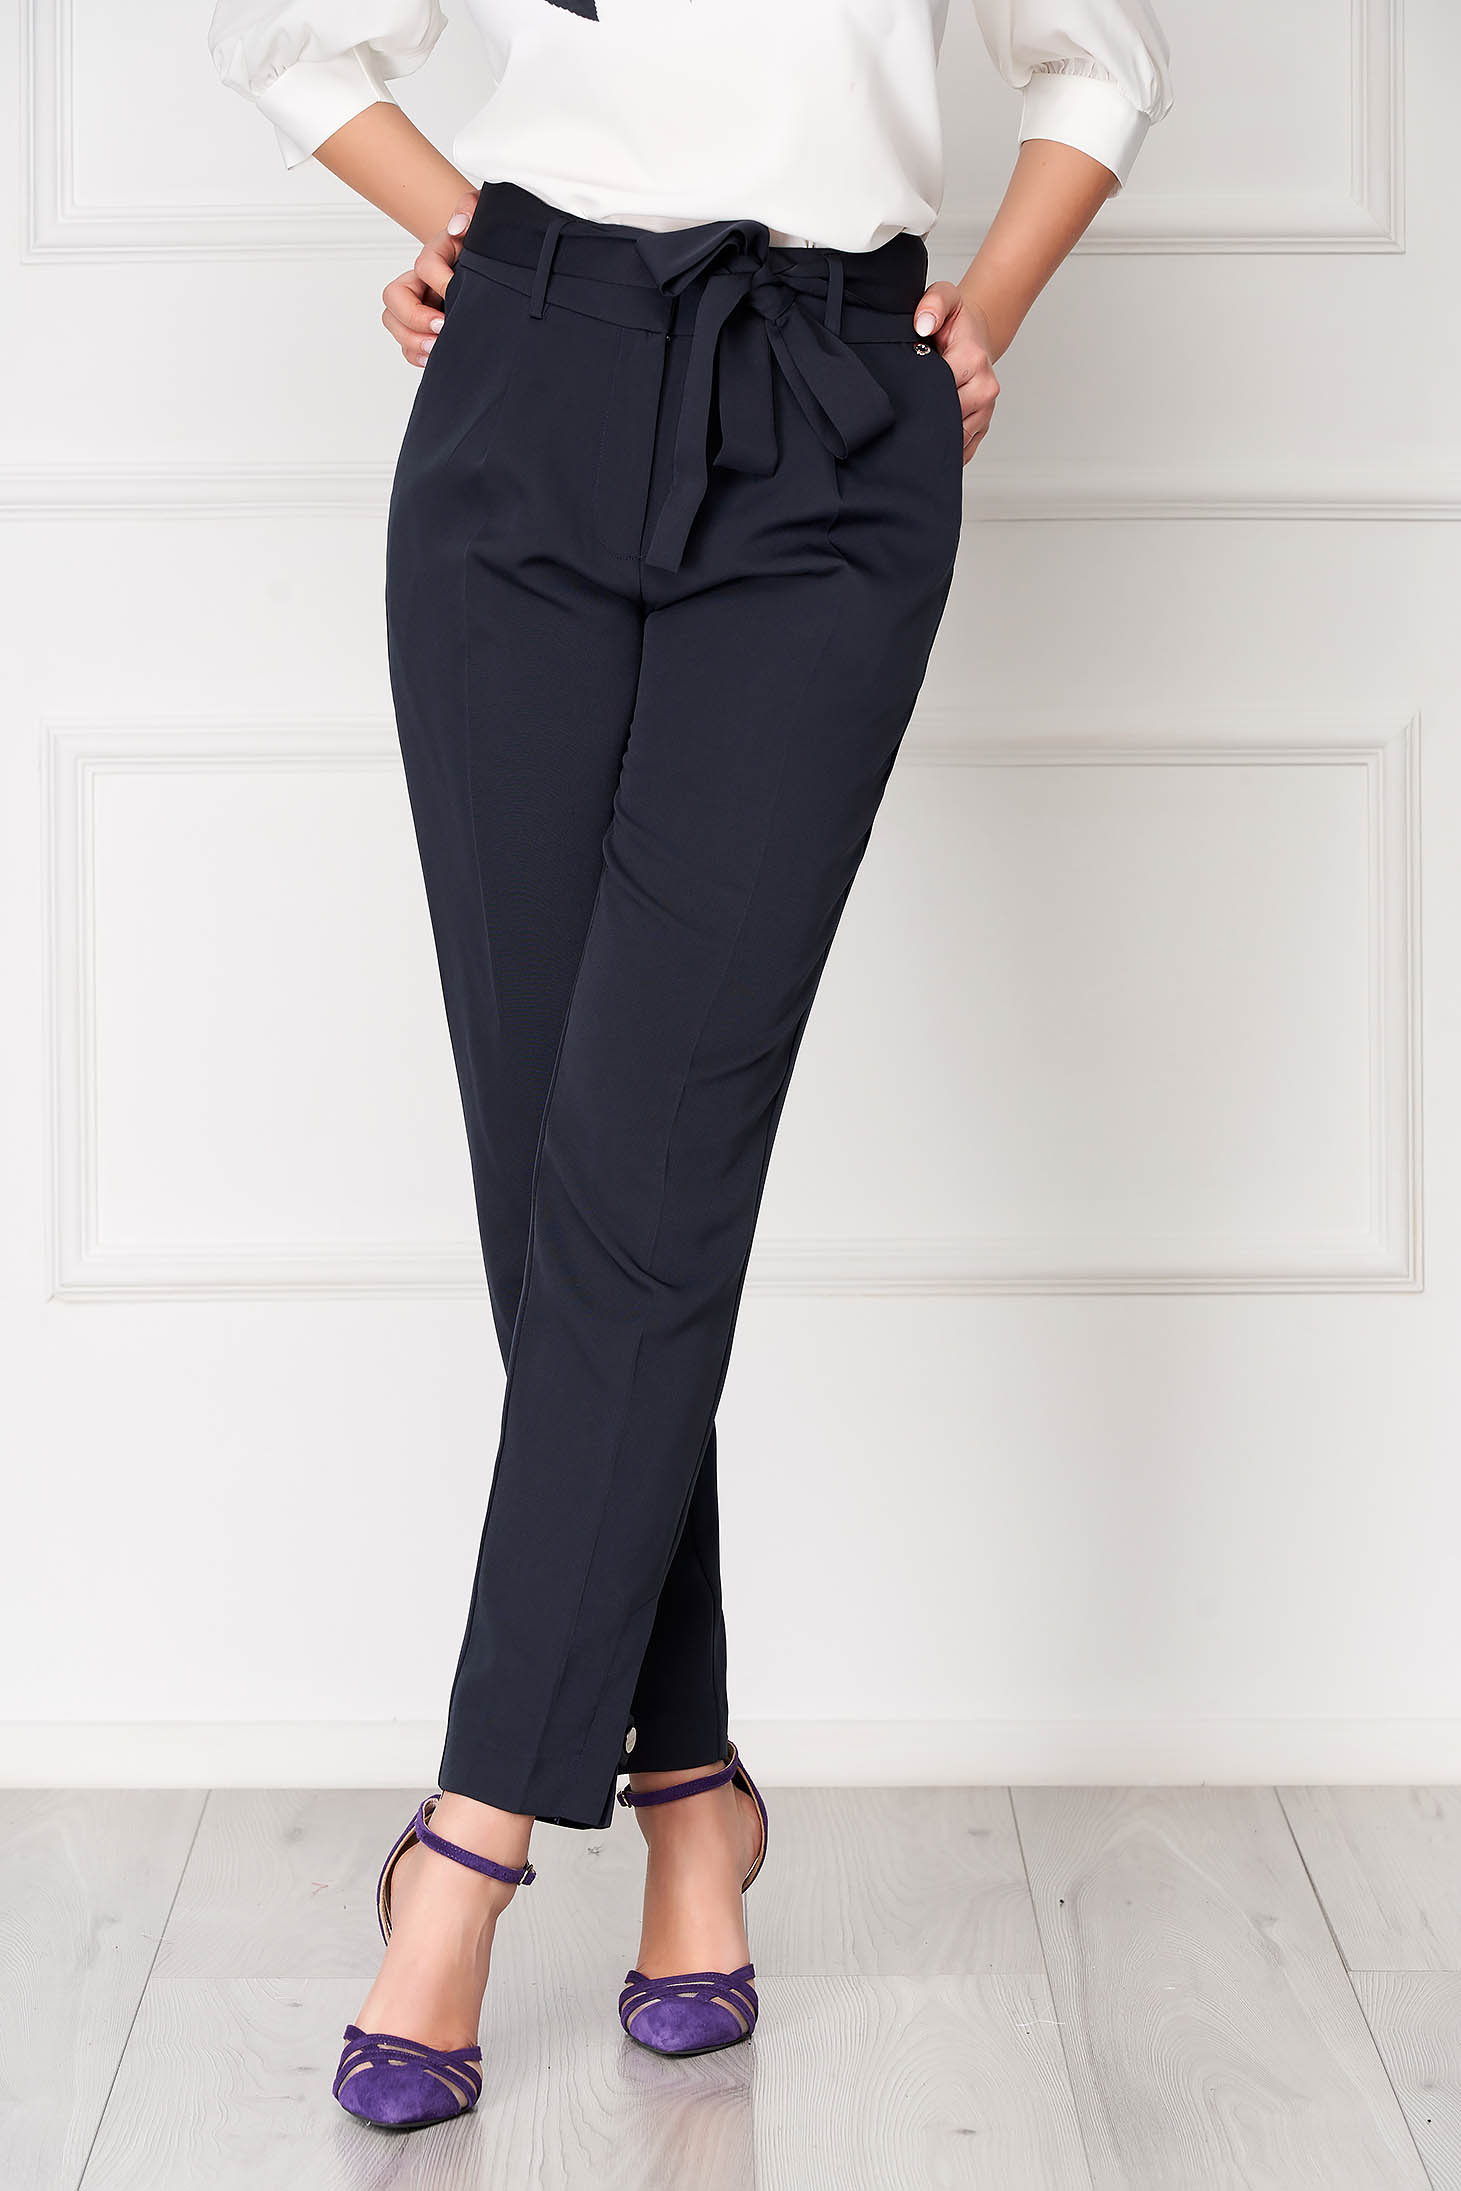 Darkblue high waisted conical office trousers with bow accessory and pockets